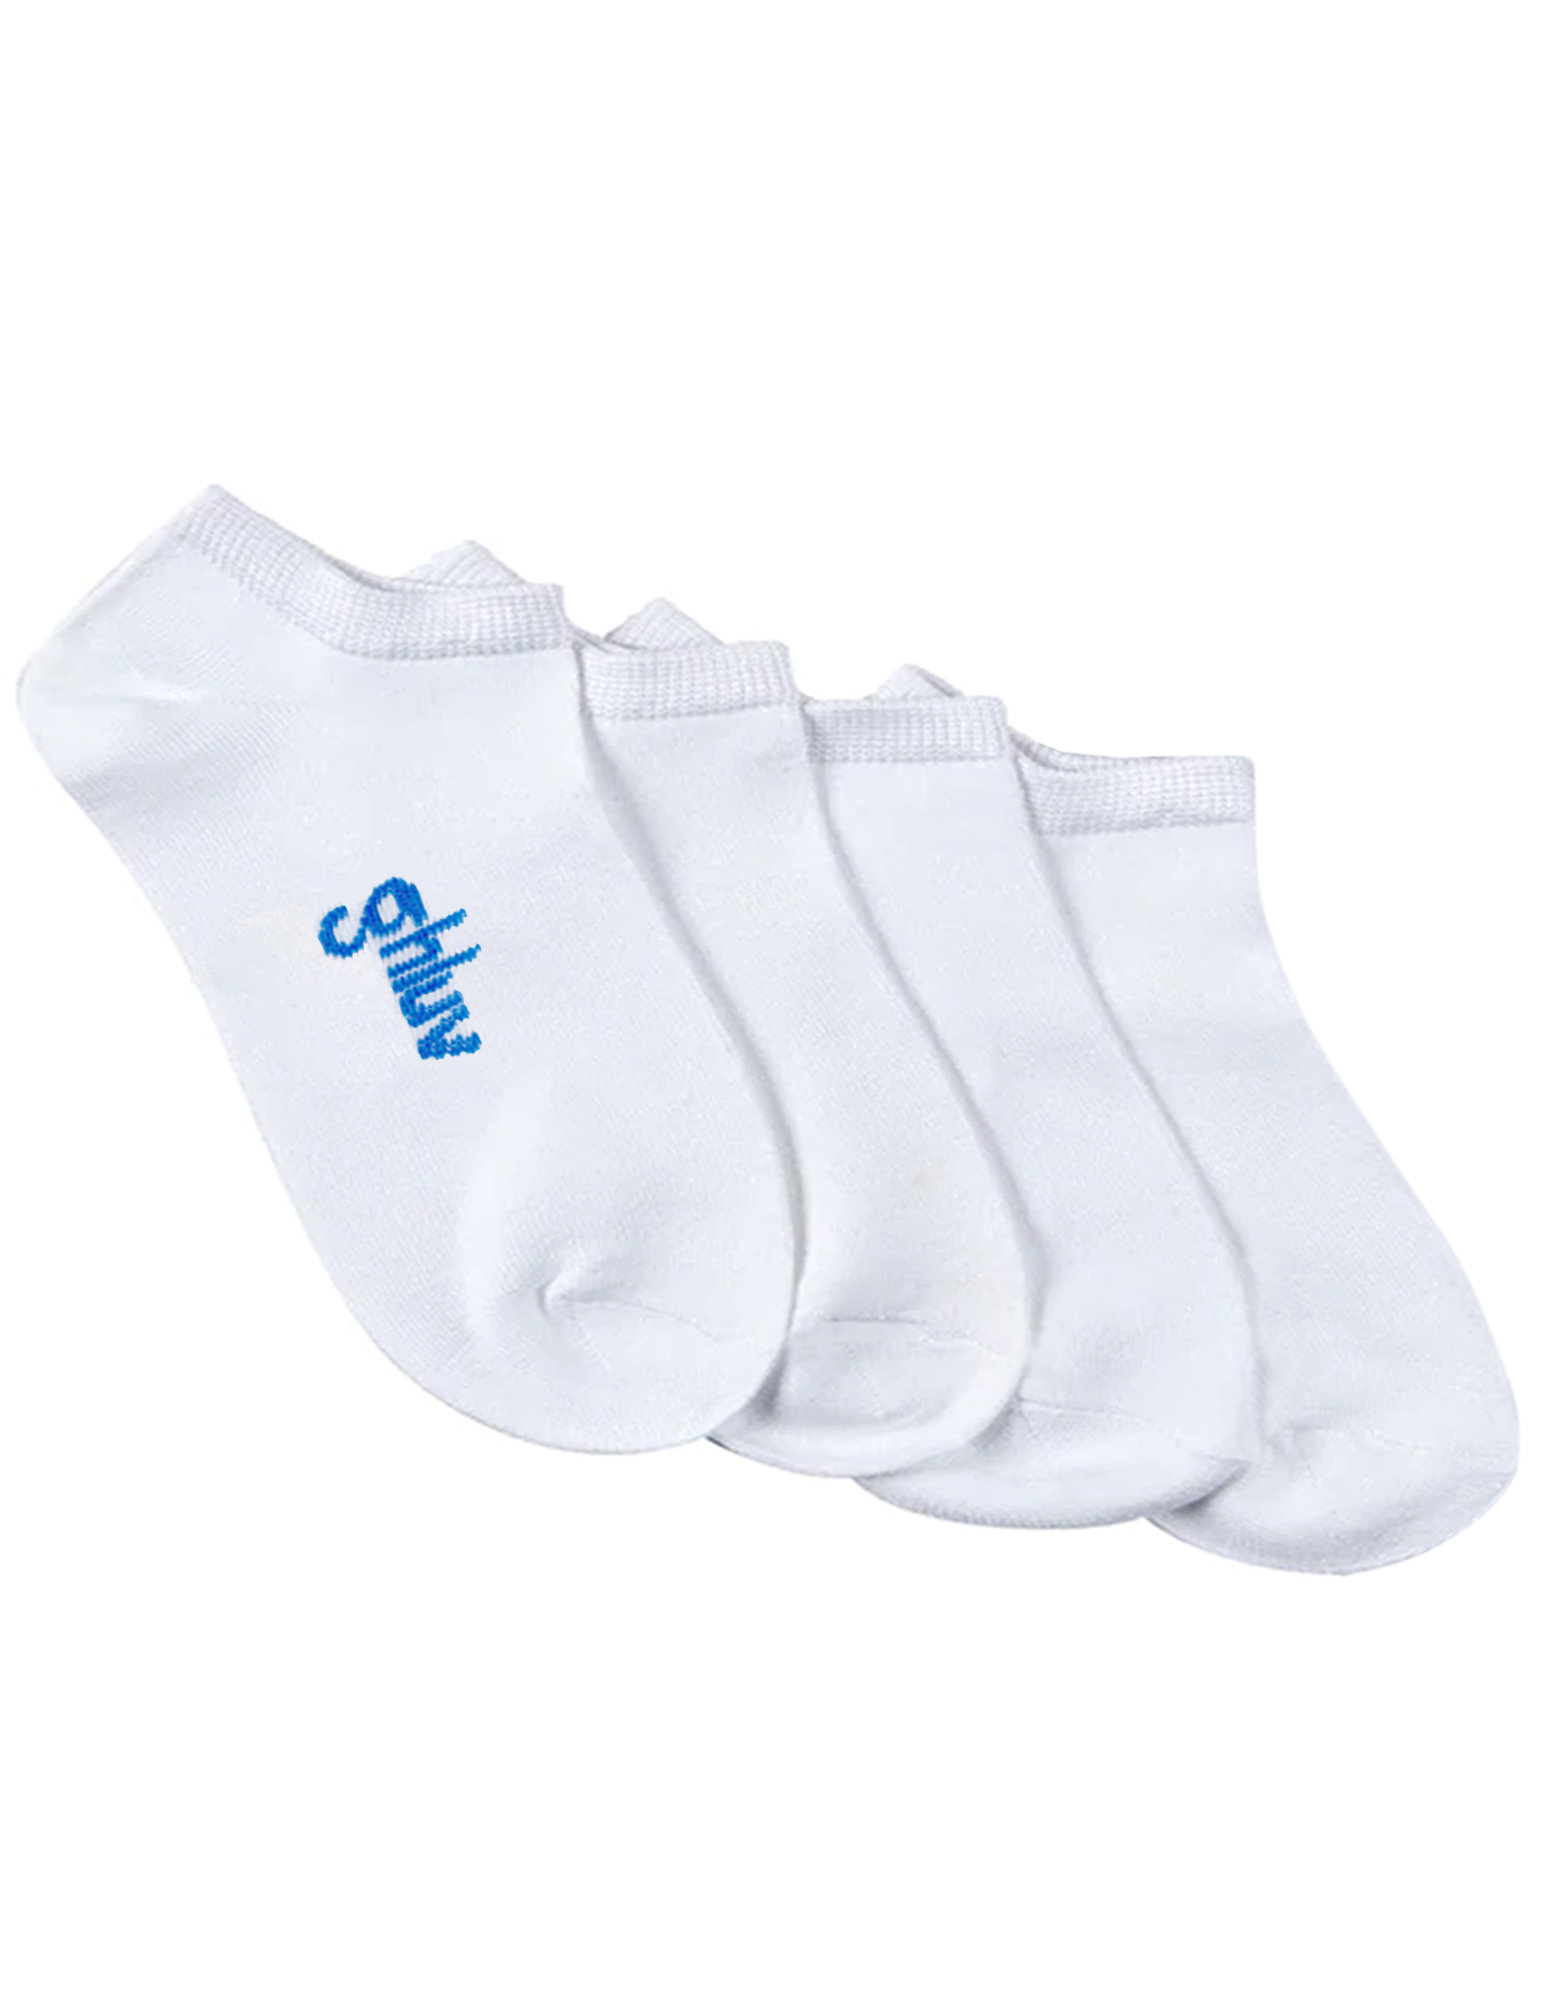 Youth Antimicrobial Home Sock 2pk, White